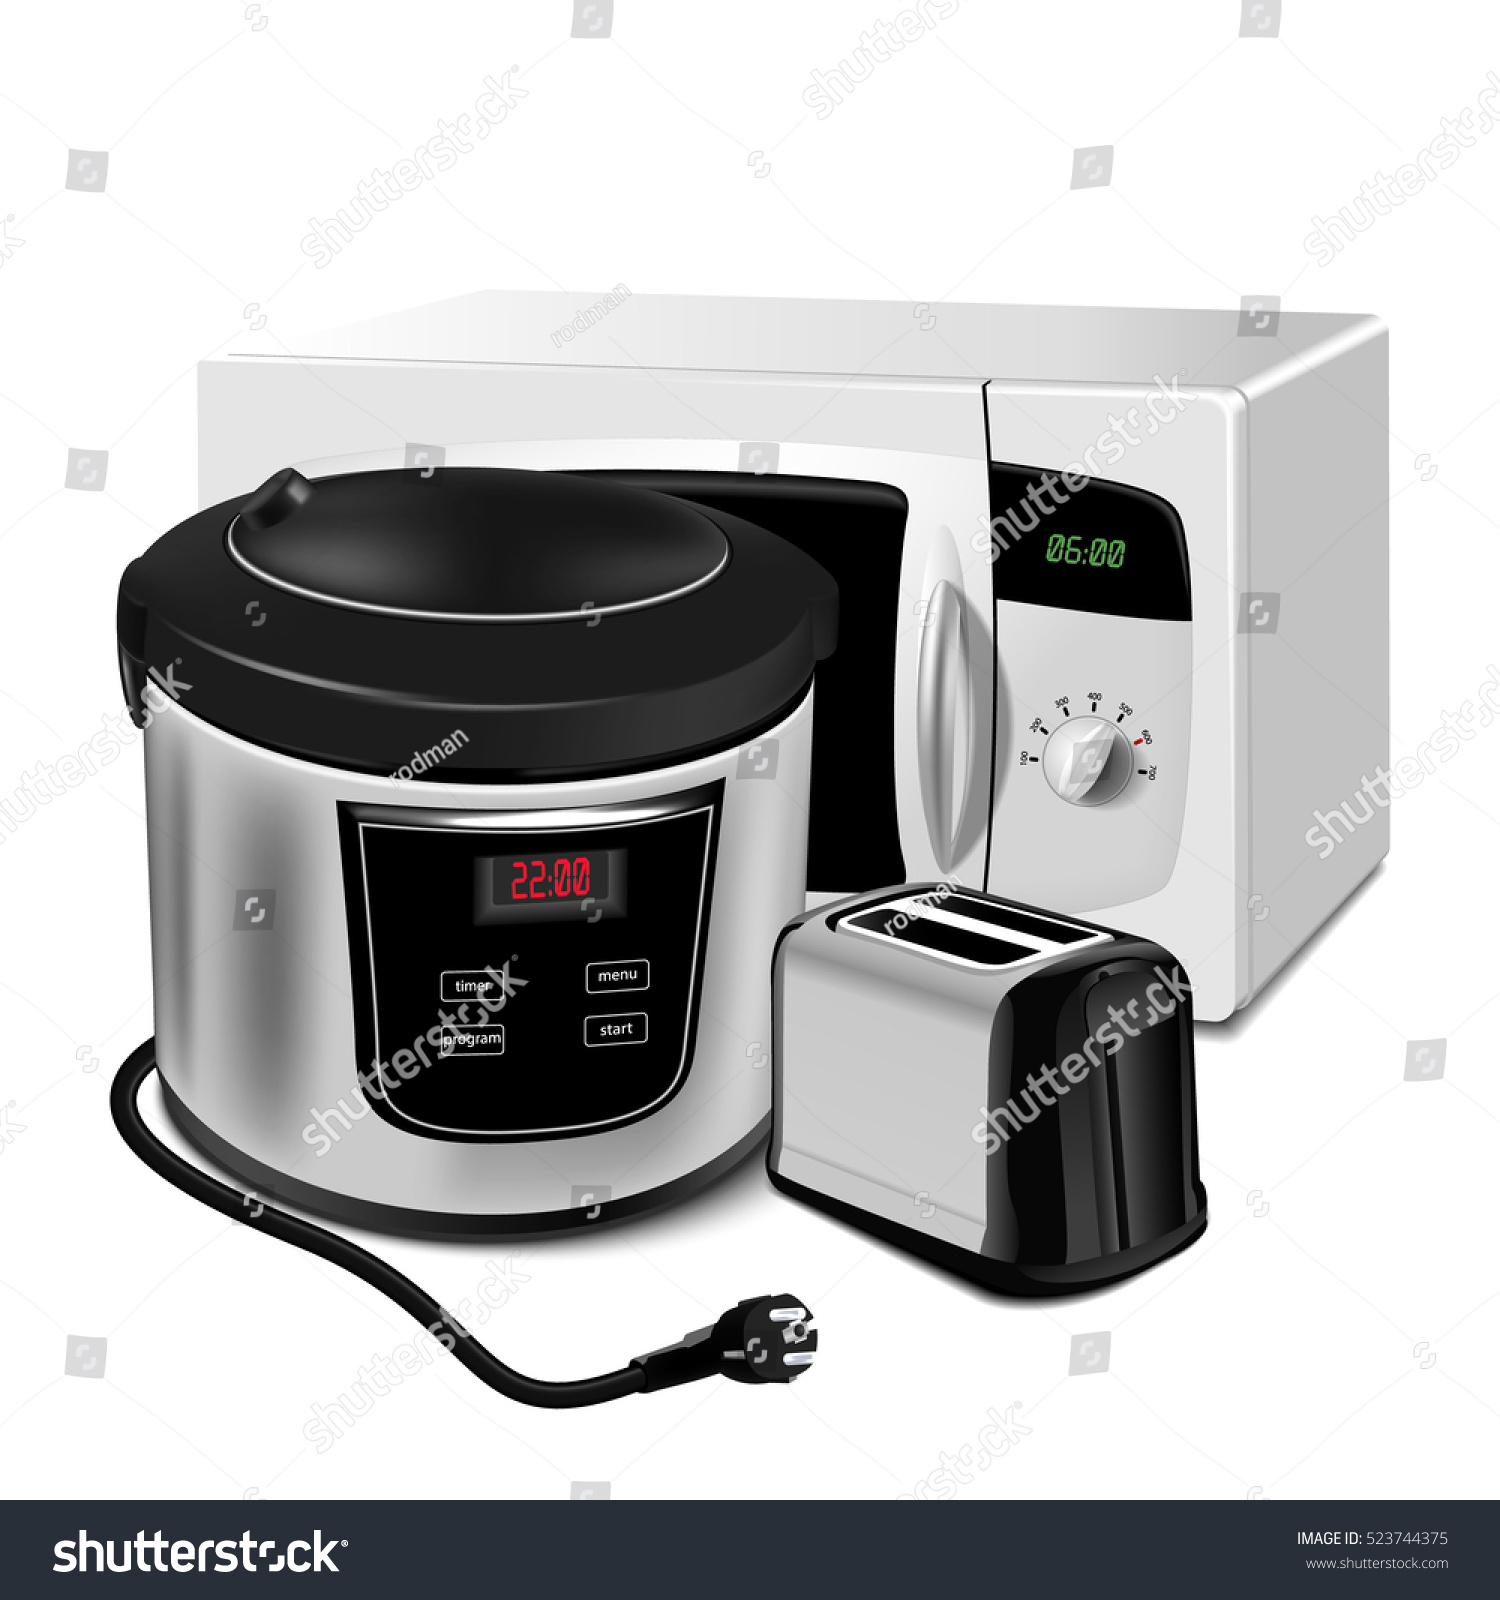 Home Appliances. Set Of Kitchen Equipment On A White Background. There Is A  Microwave